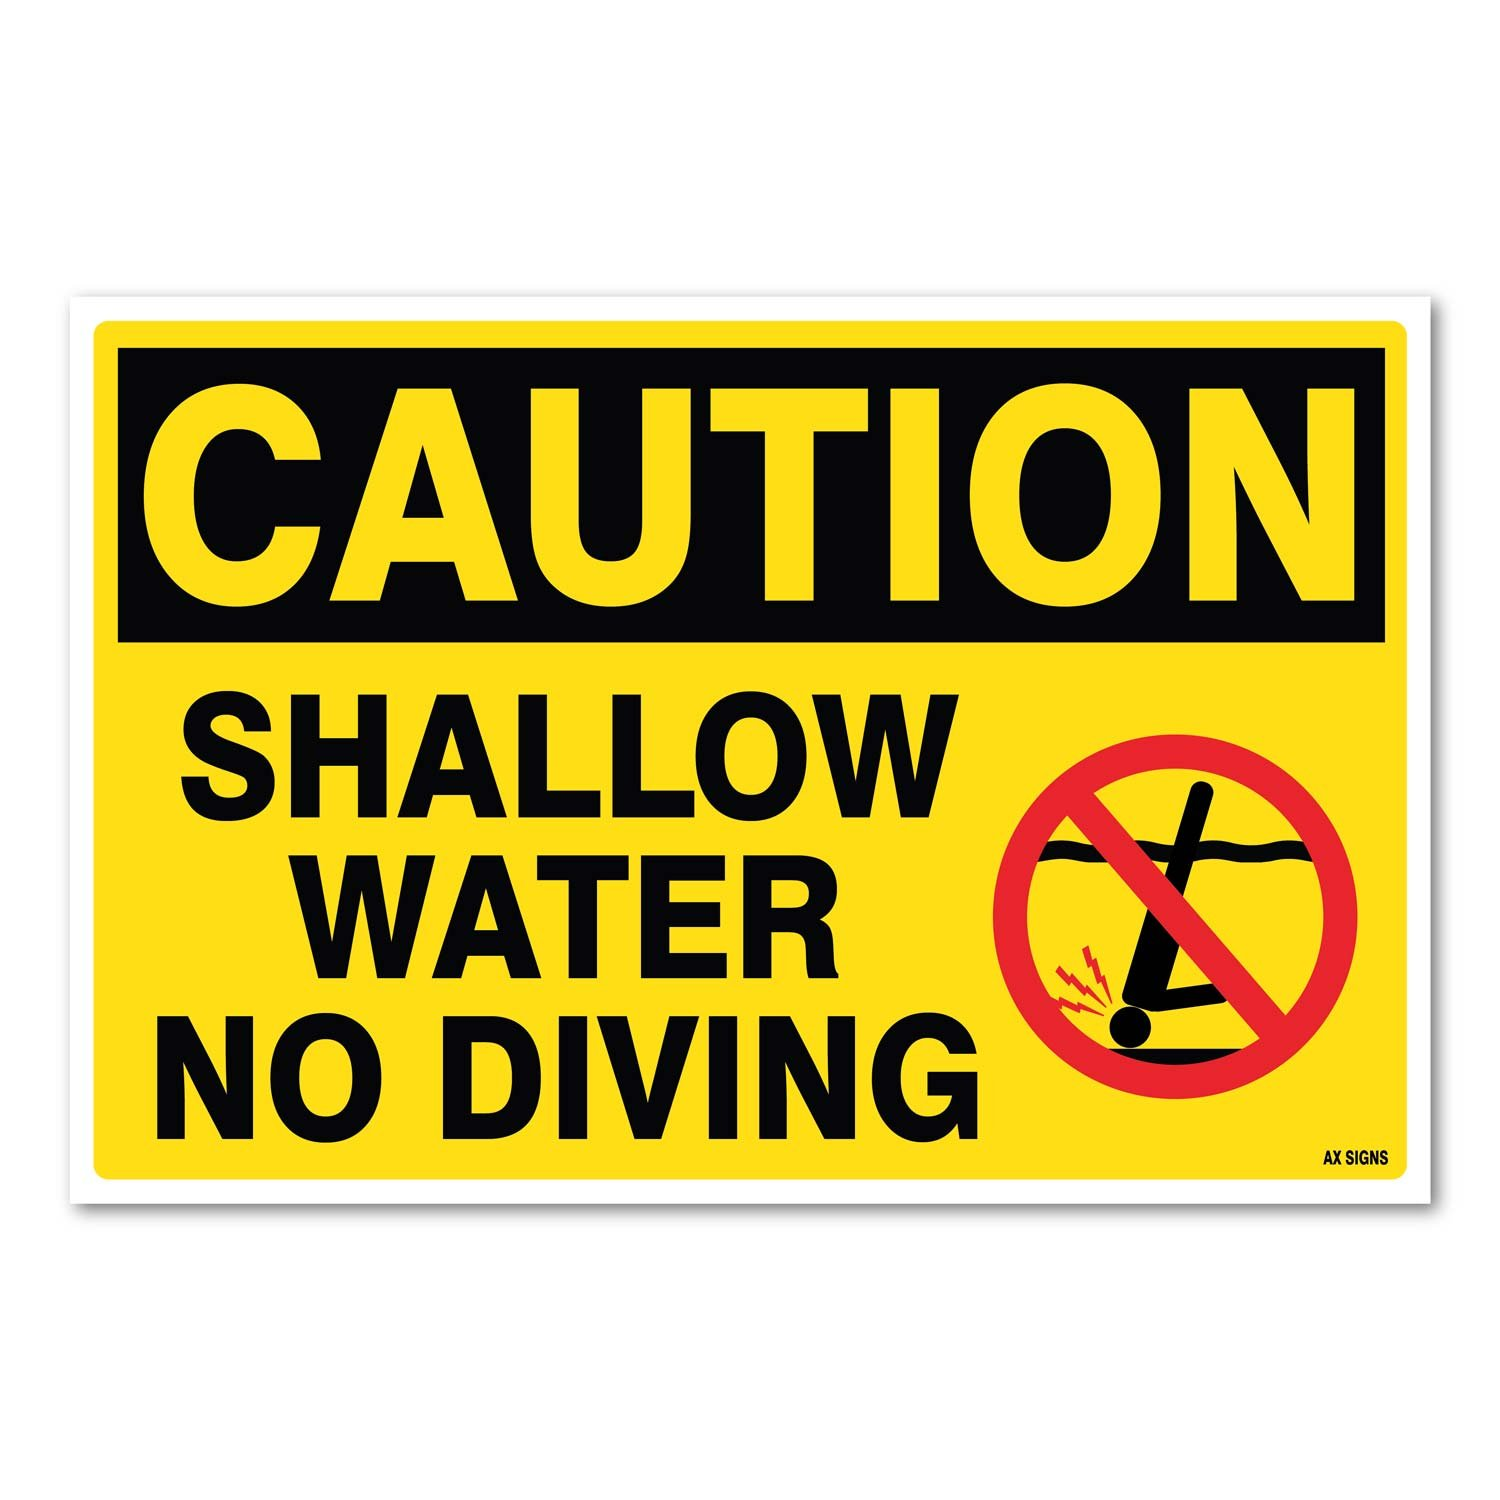 UV Protected Caution: Shallow Water No Diving with Graphic Waterproof 10 high x 15 Wide AX Signs 10 high x 15 Wide Self Adhesive Vinyl Sticker Rust Free Black//Red on Yellow Indoor and Outdoor Use